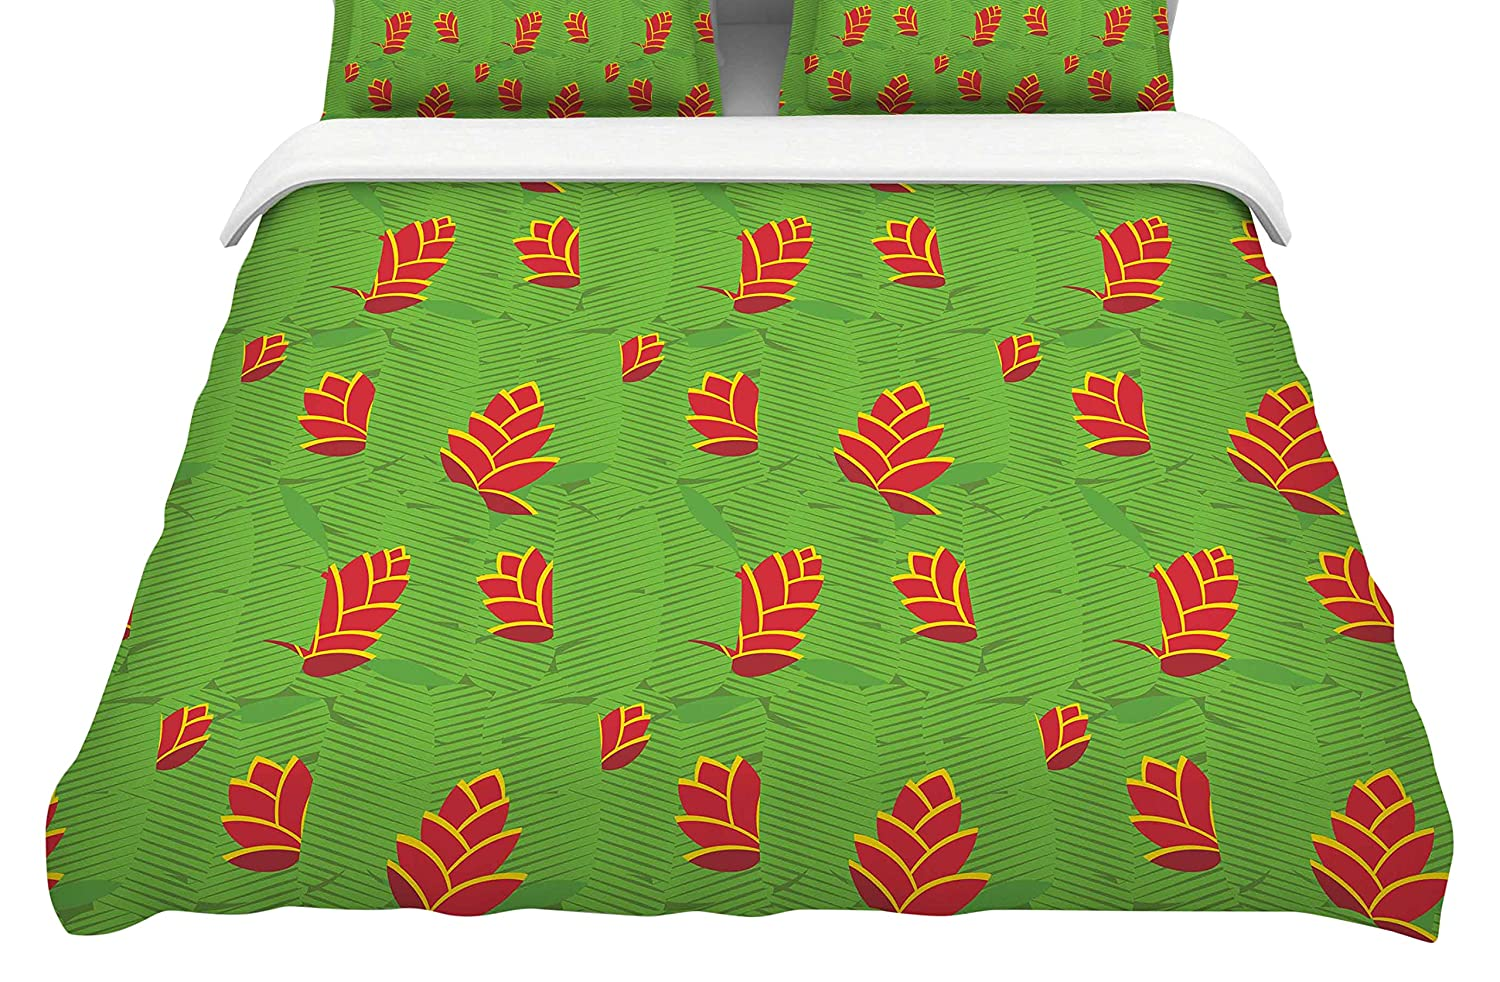 Kess InHouse Yenty Jap Heliconia Green Red Featherweight Queen Duvet Cover 88 x 88,